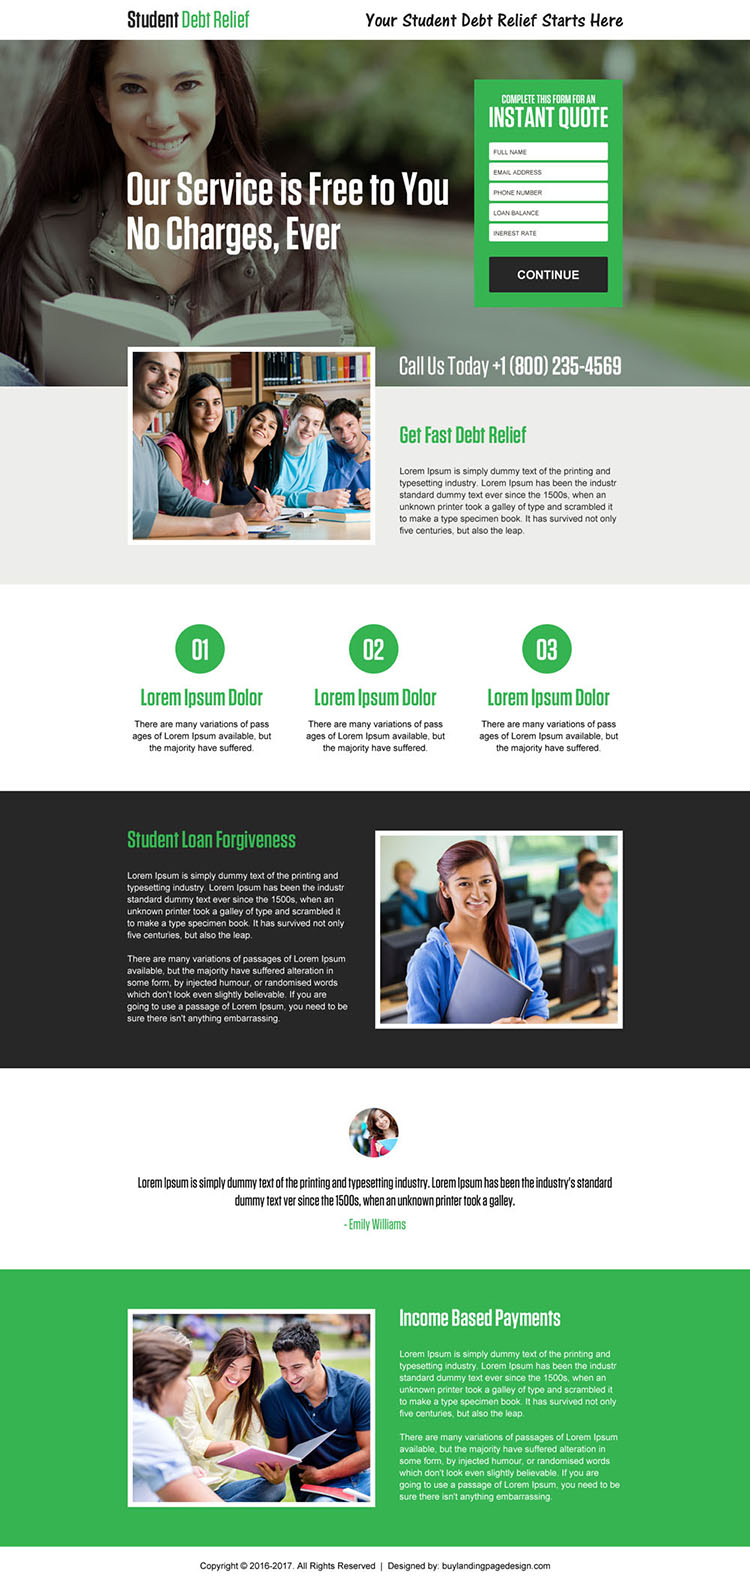 student debt relief instant quote landing page design